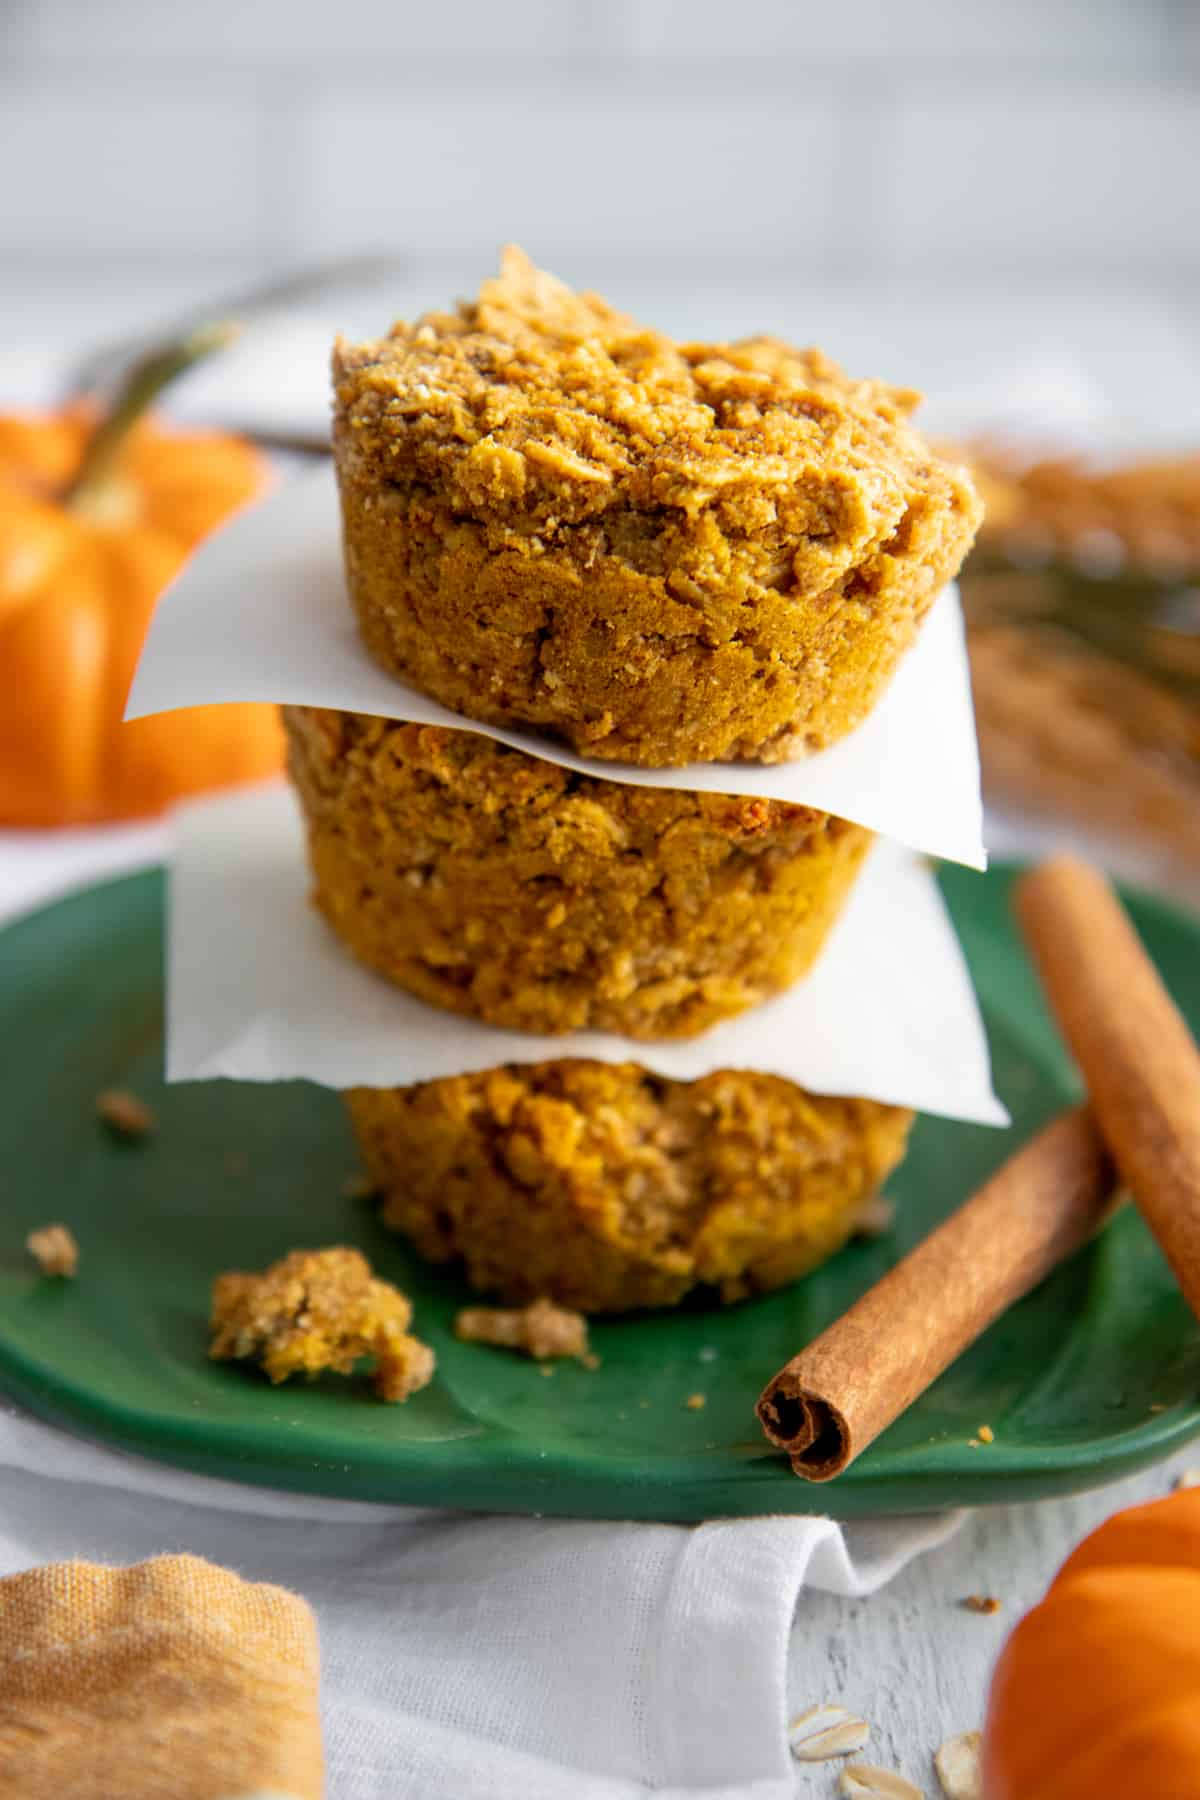 Three Pumpkin Spice Baked Oatmeal Cups stacked on a green plate, with pieces of parchment paper separating them